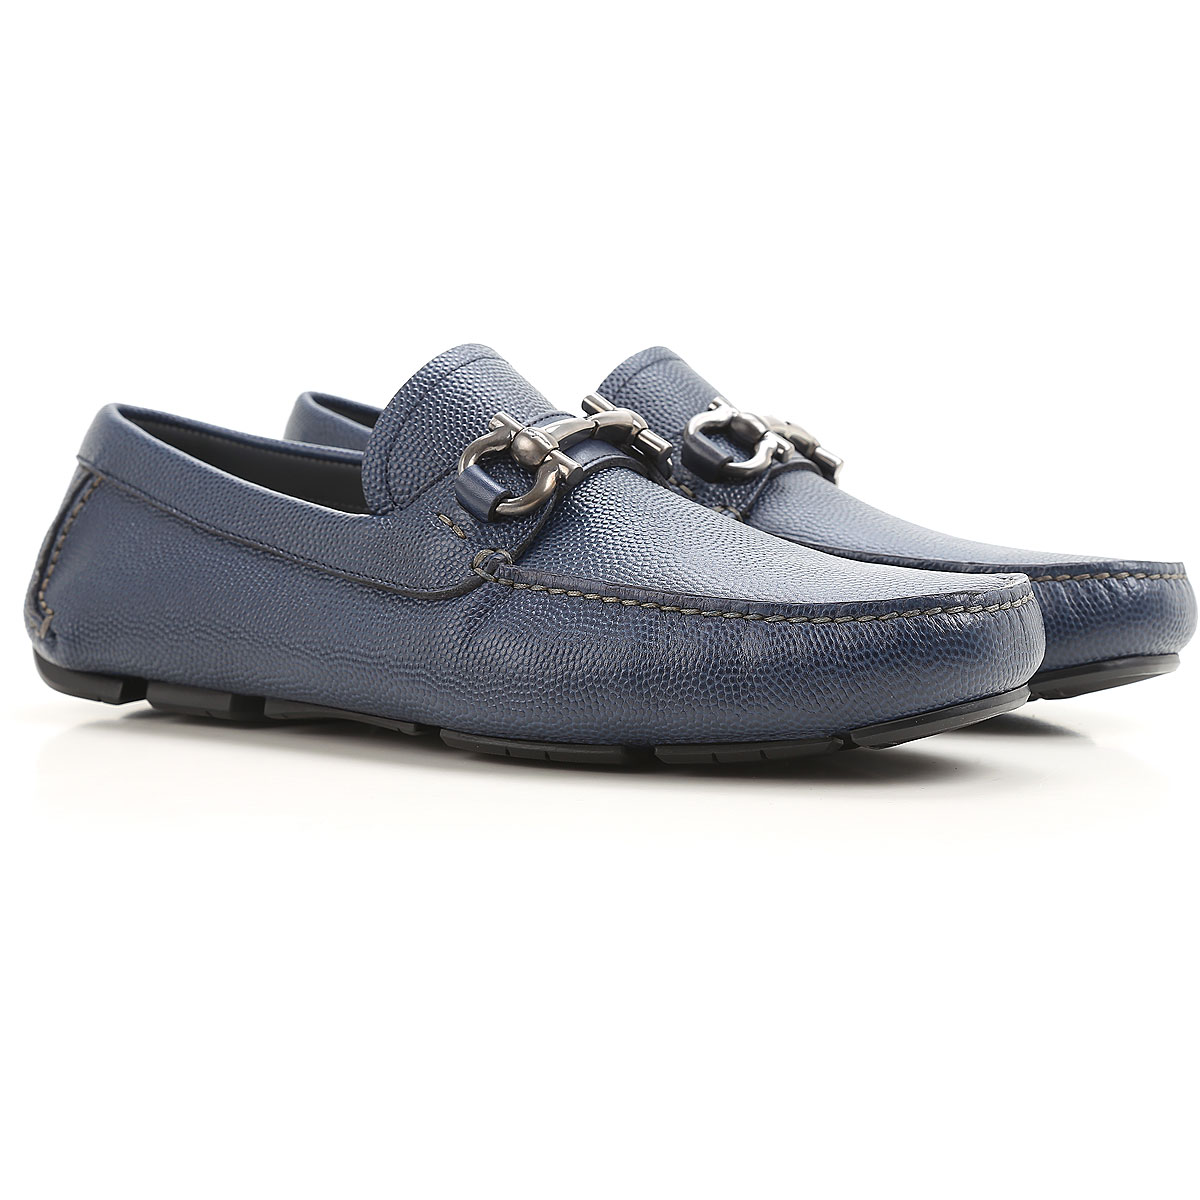 Image of Salvatore Ferragamo Loafers for Men On Sale in Outlet, Bluette, Leather, 2017, 6 8.5